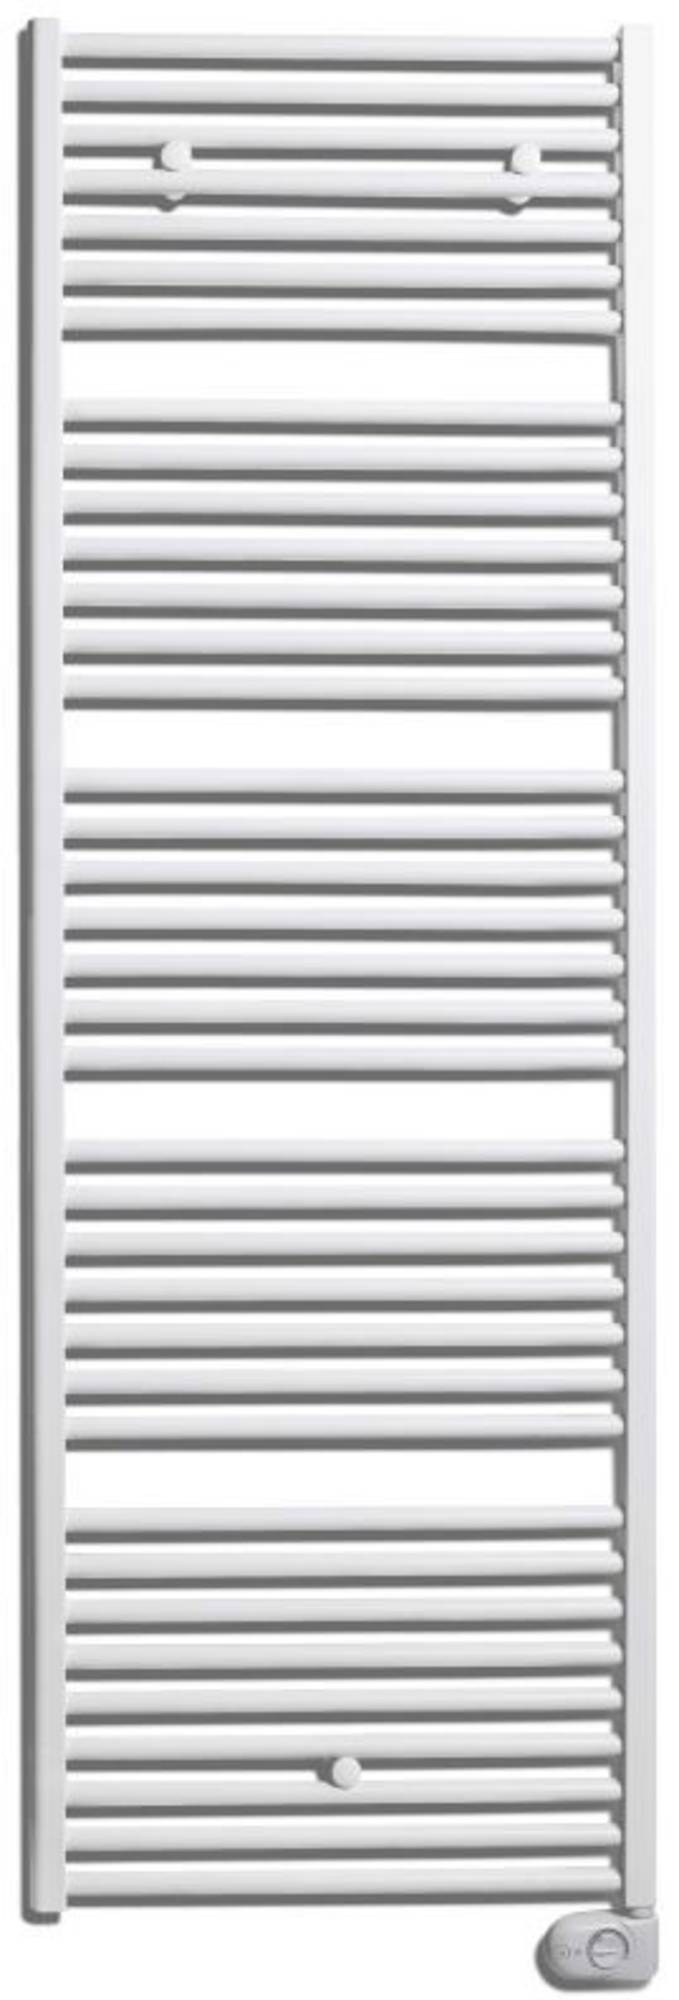 Elektrische Radiator Vasco Bathline BB-EL 500x878mm 500Watt Wit